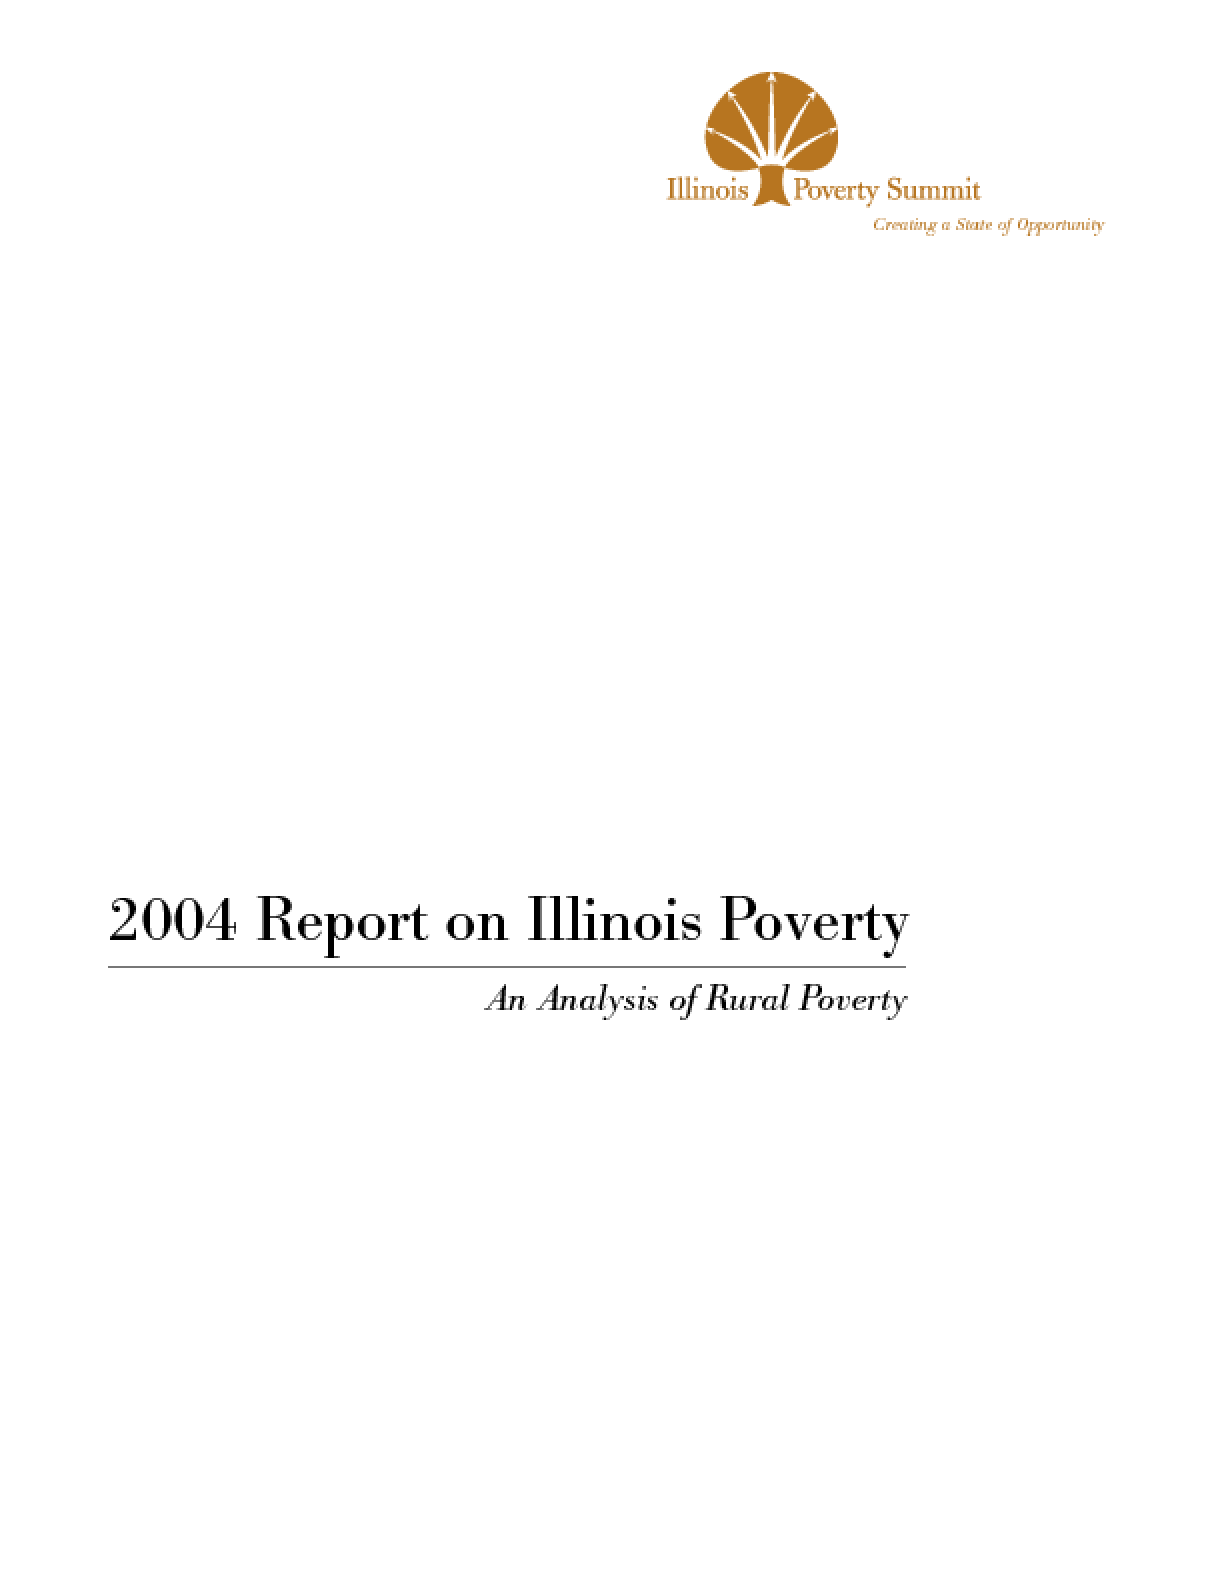 2004 Report on Illinois Poverty: An Analysis of Rural Poverty